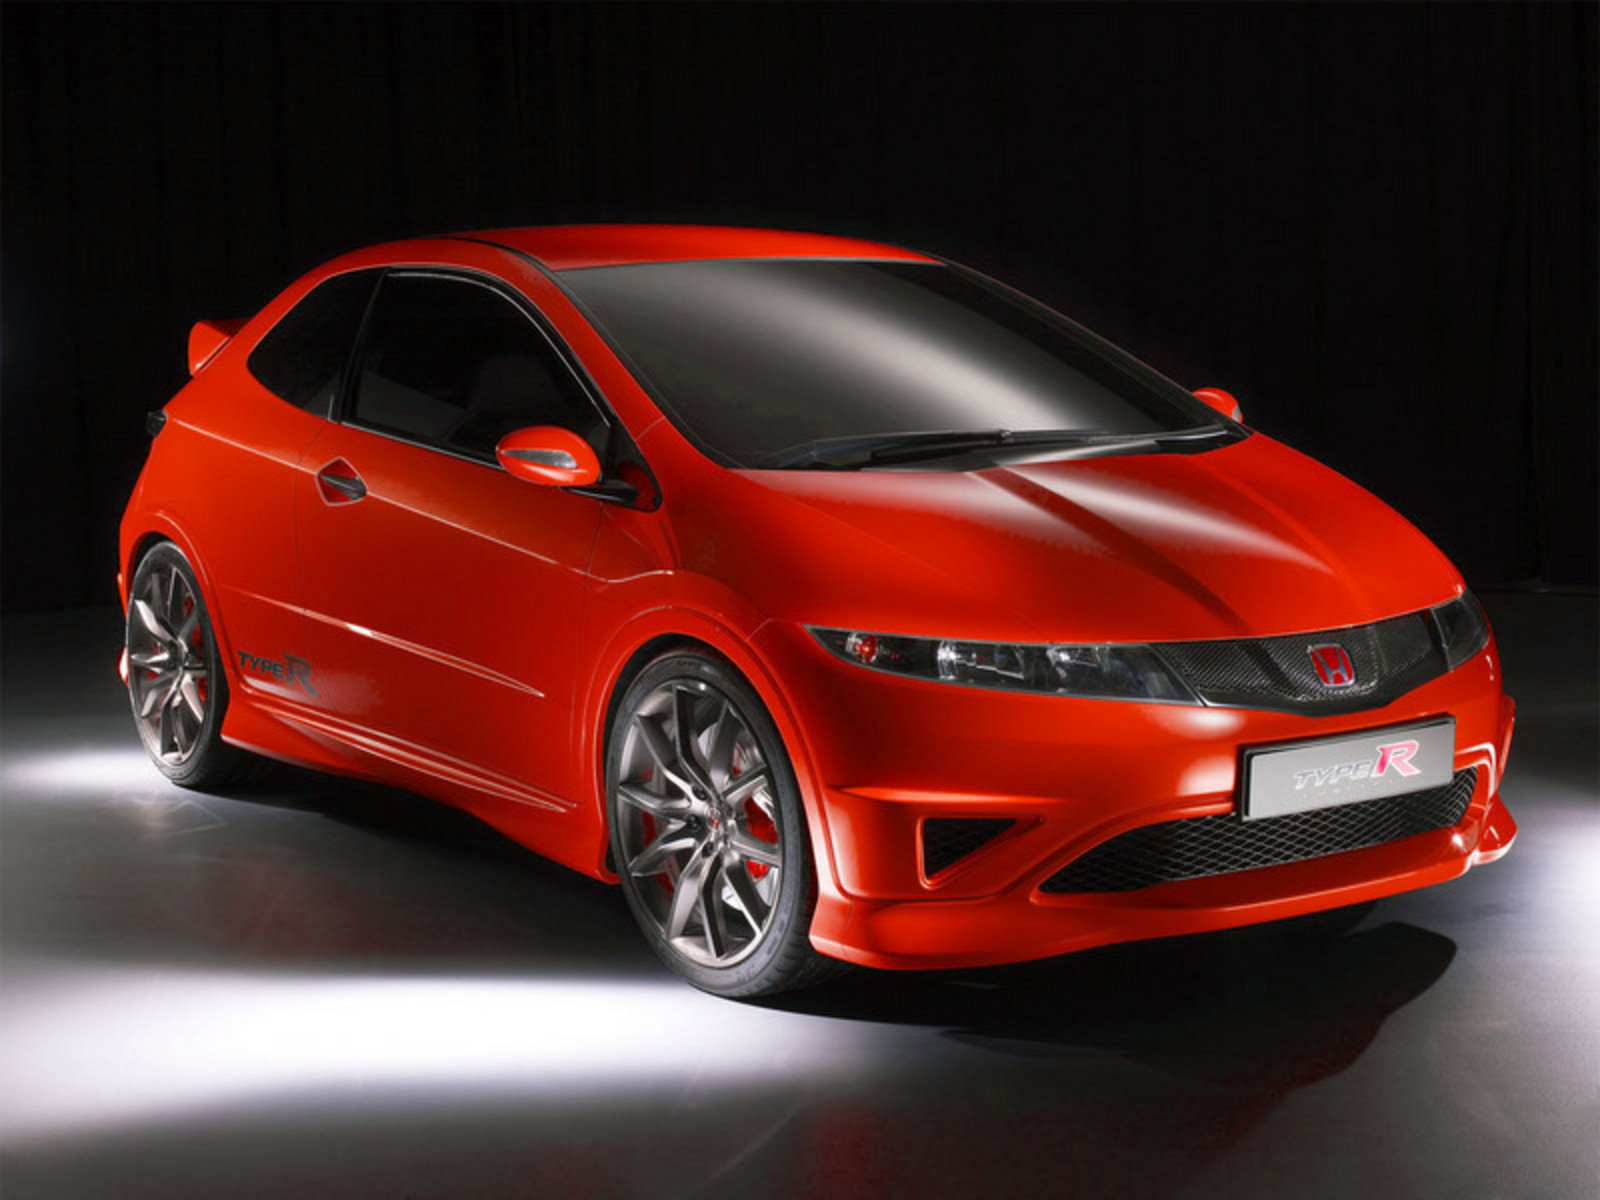 2007 honda civic type r picture 86802 car review top speed. Black Bedroom Furniture Sets. Home Design Ideas